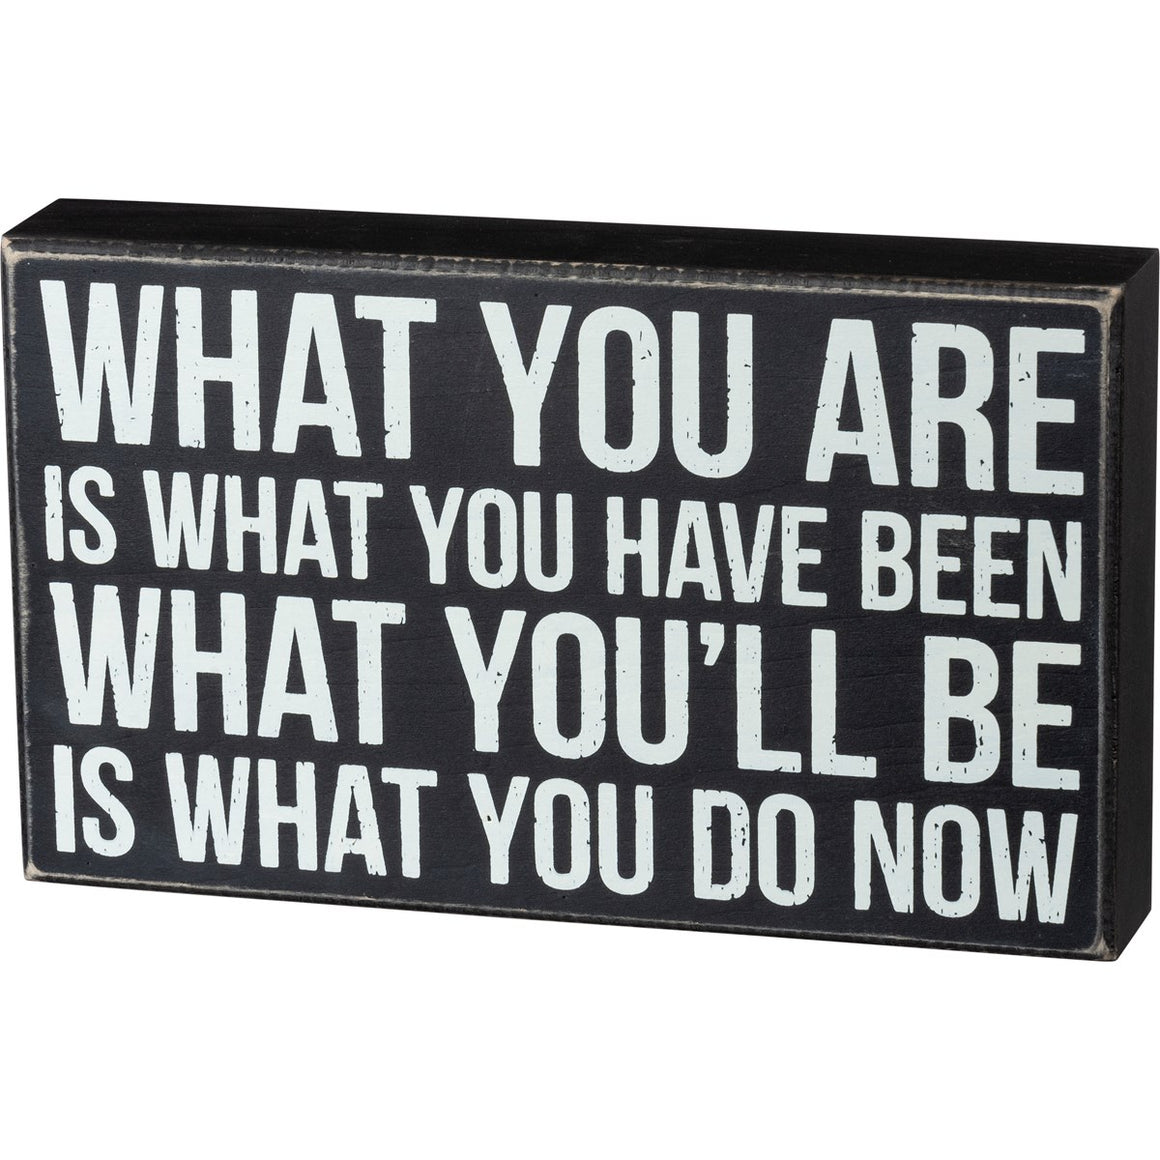 What You Are Is What You Have Been - What You'll Be Is What You Do Now Box Sign